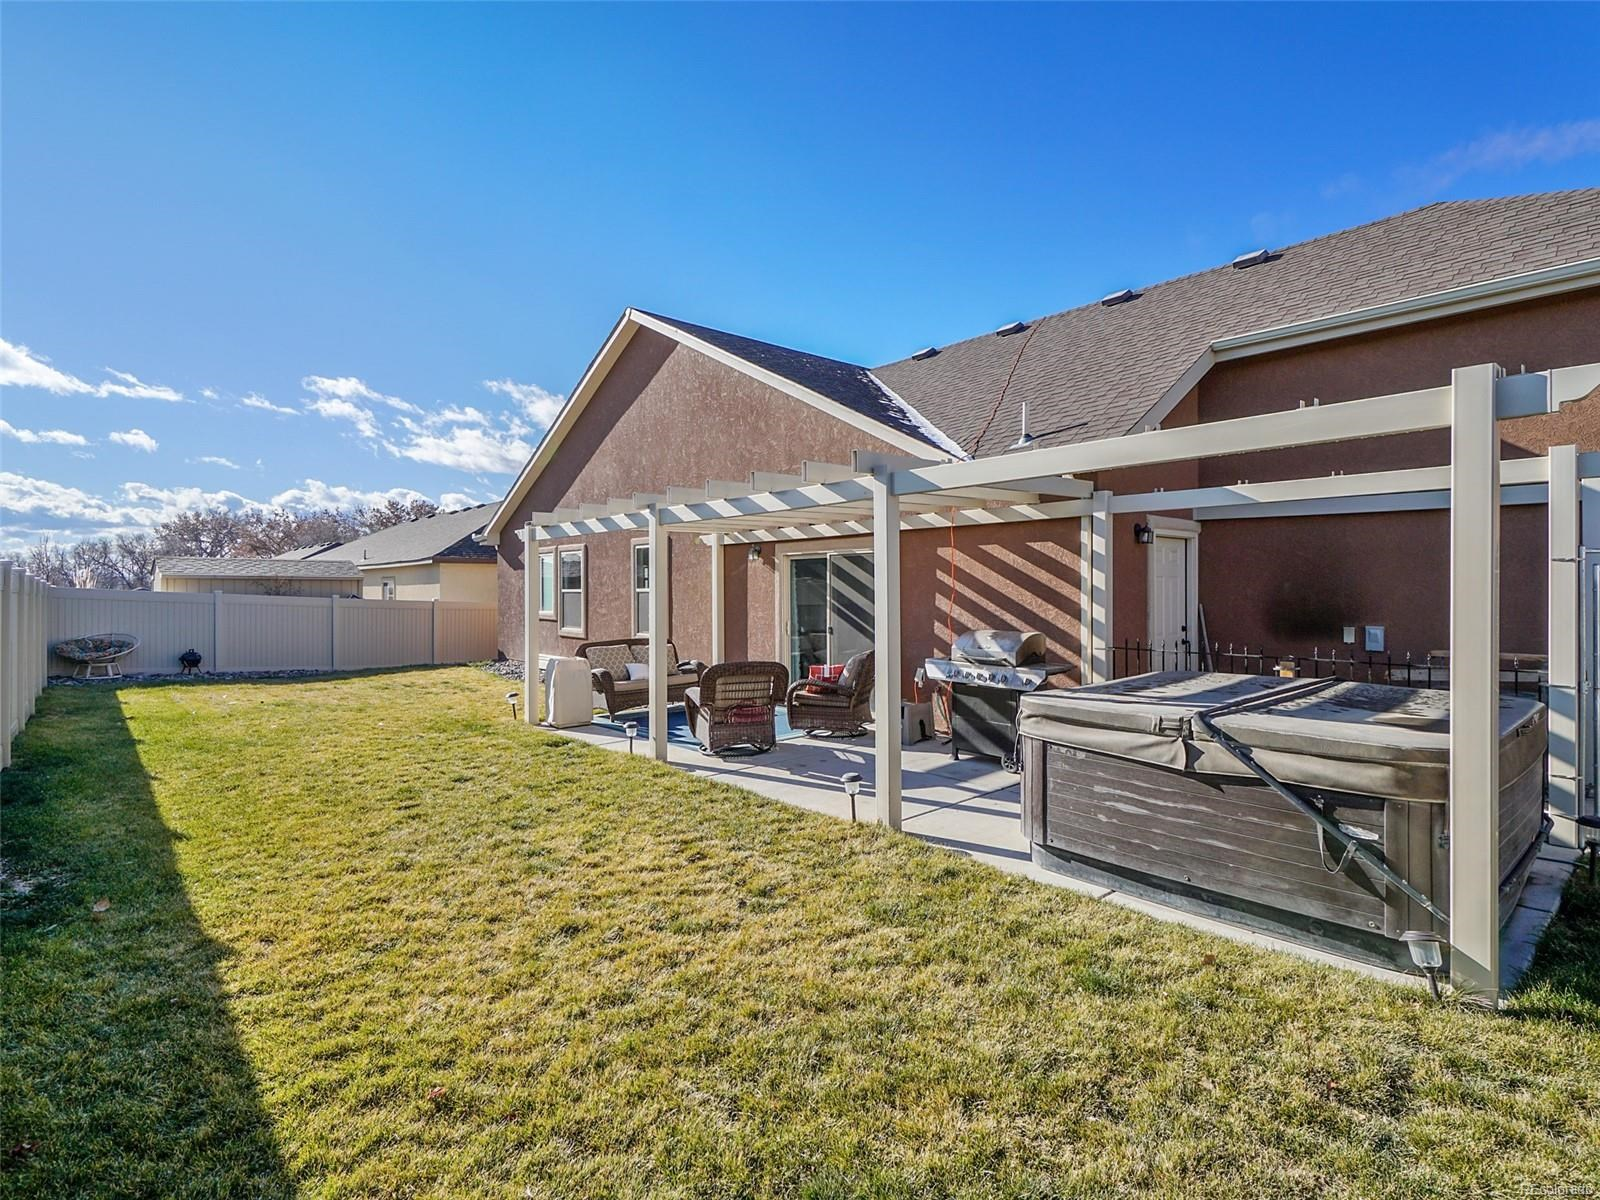 MLS# 9647581 - 5 - 636 Allegheny Drive, Grand Junction, CO 81504